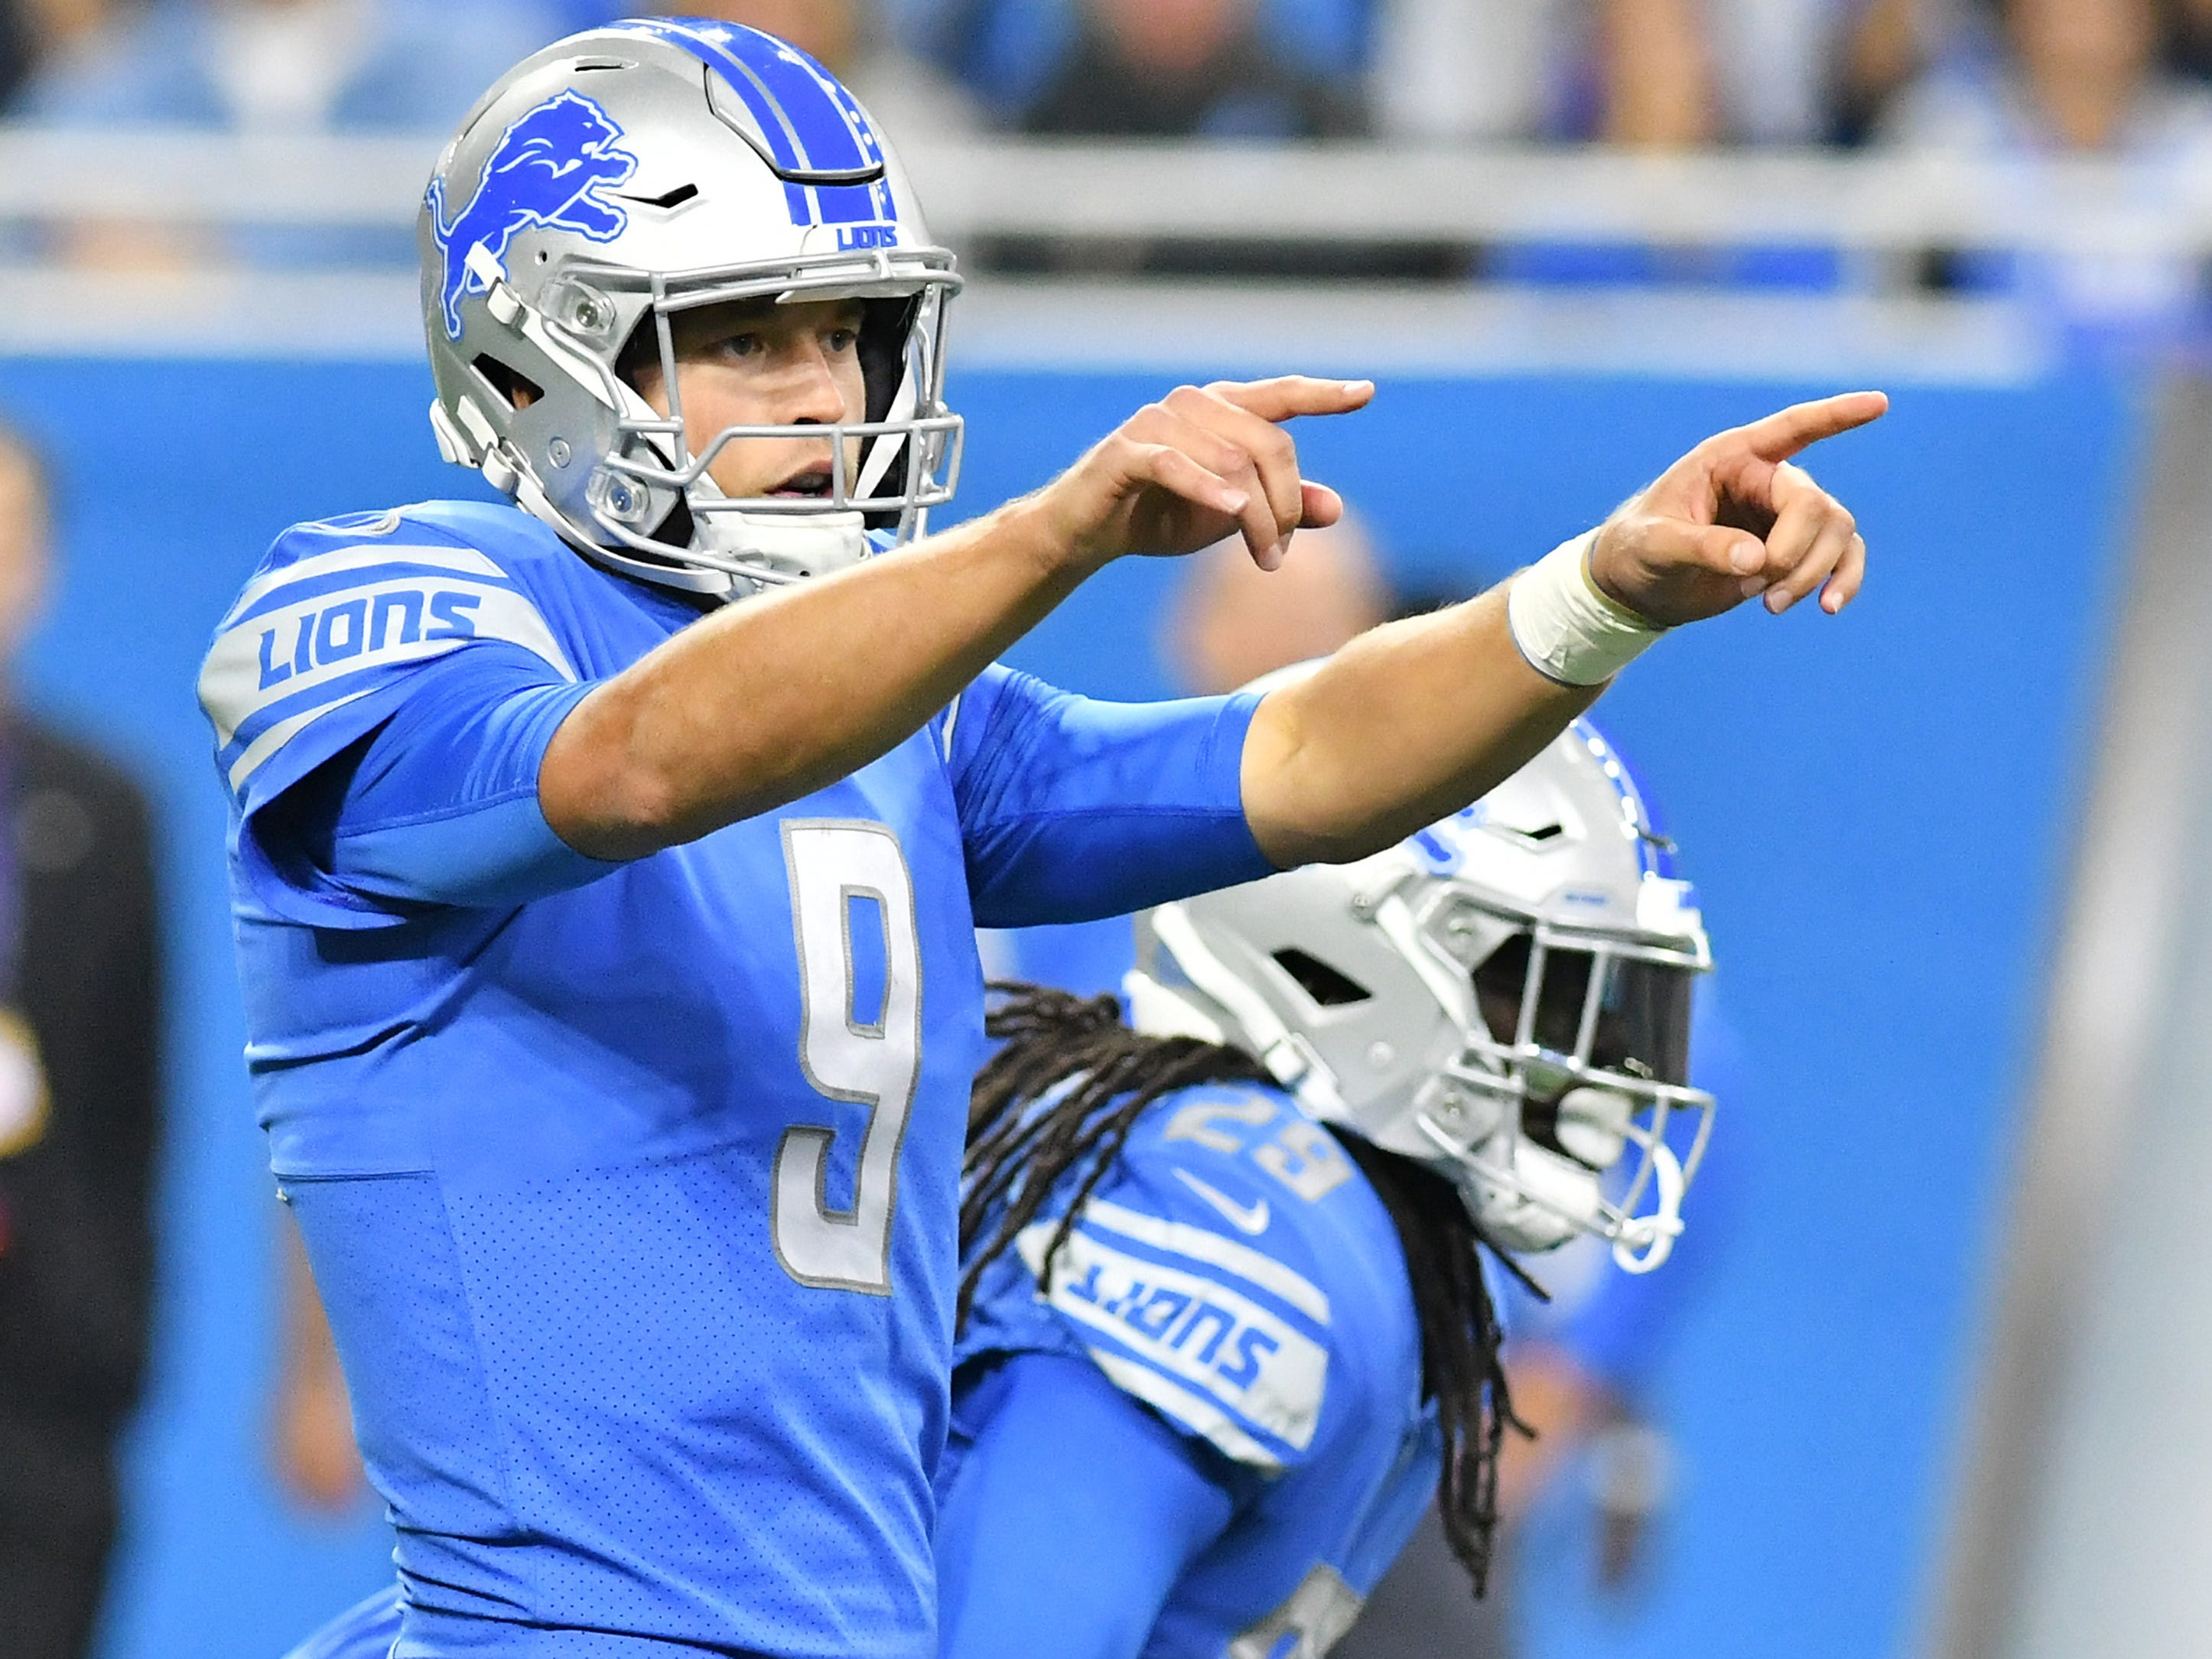 Lions quarterback Matthew Stafford before the snap in the first half.